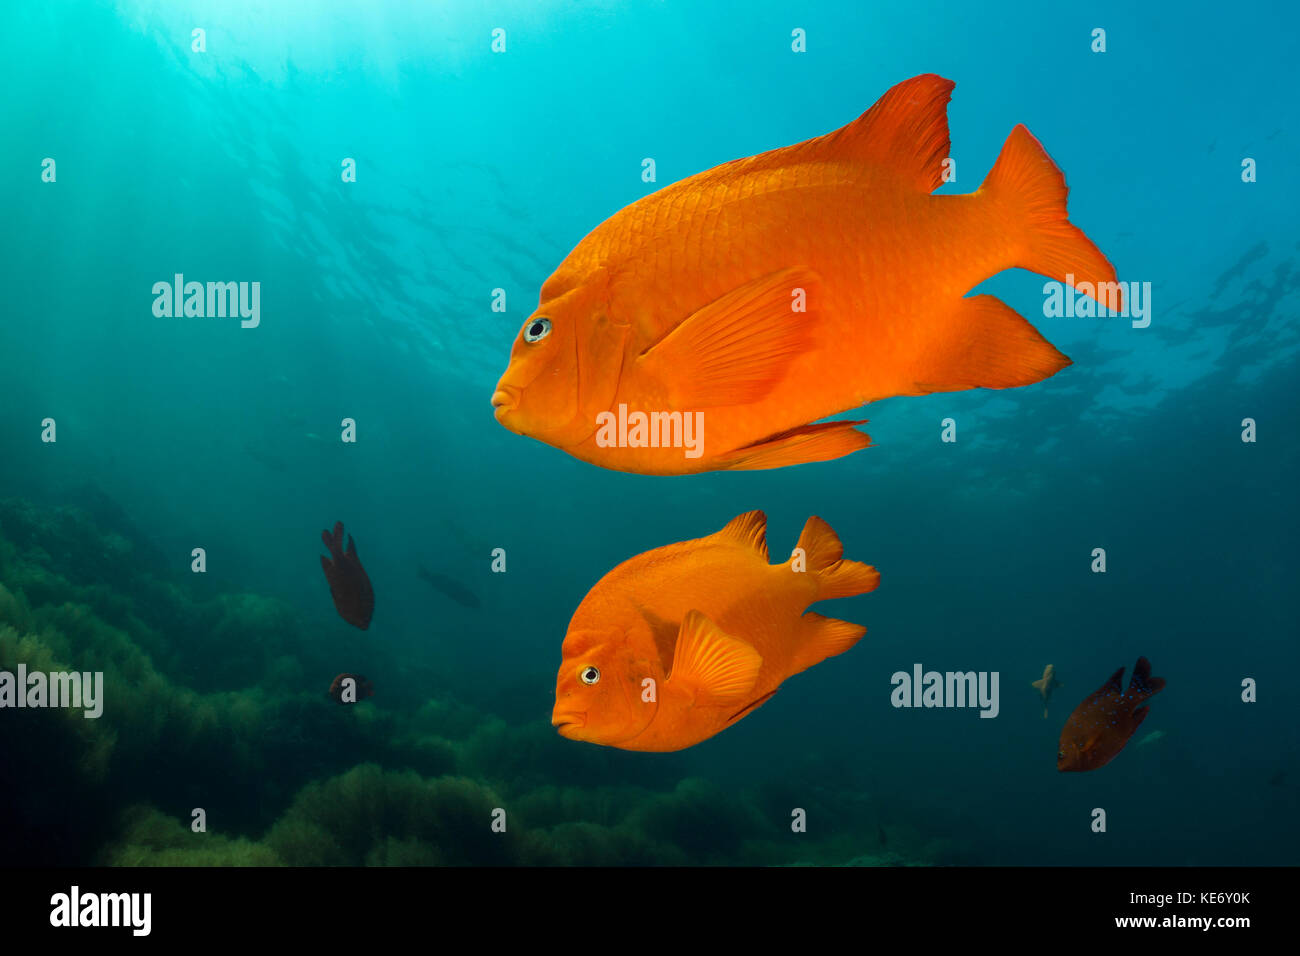 Garibaldi Fish, Hypsypops rubicundus, Catalina Island, California, USA Stock Photo